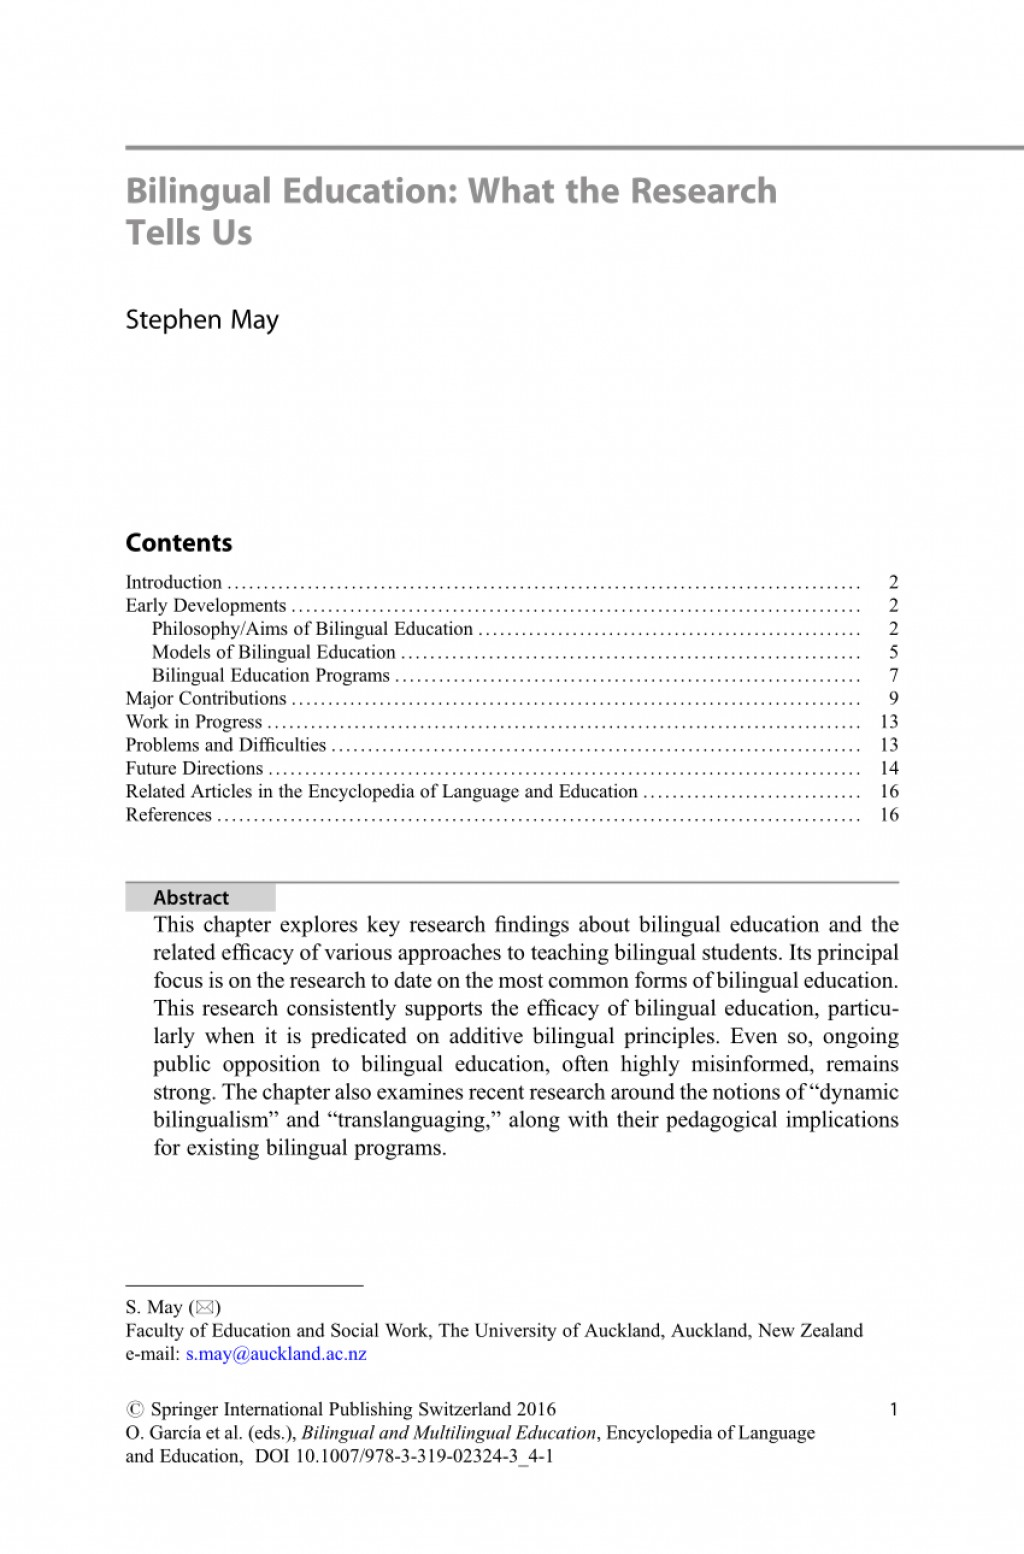 001 Research Paper Largepreview Bilingual Education Unusual Pdf Large